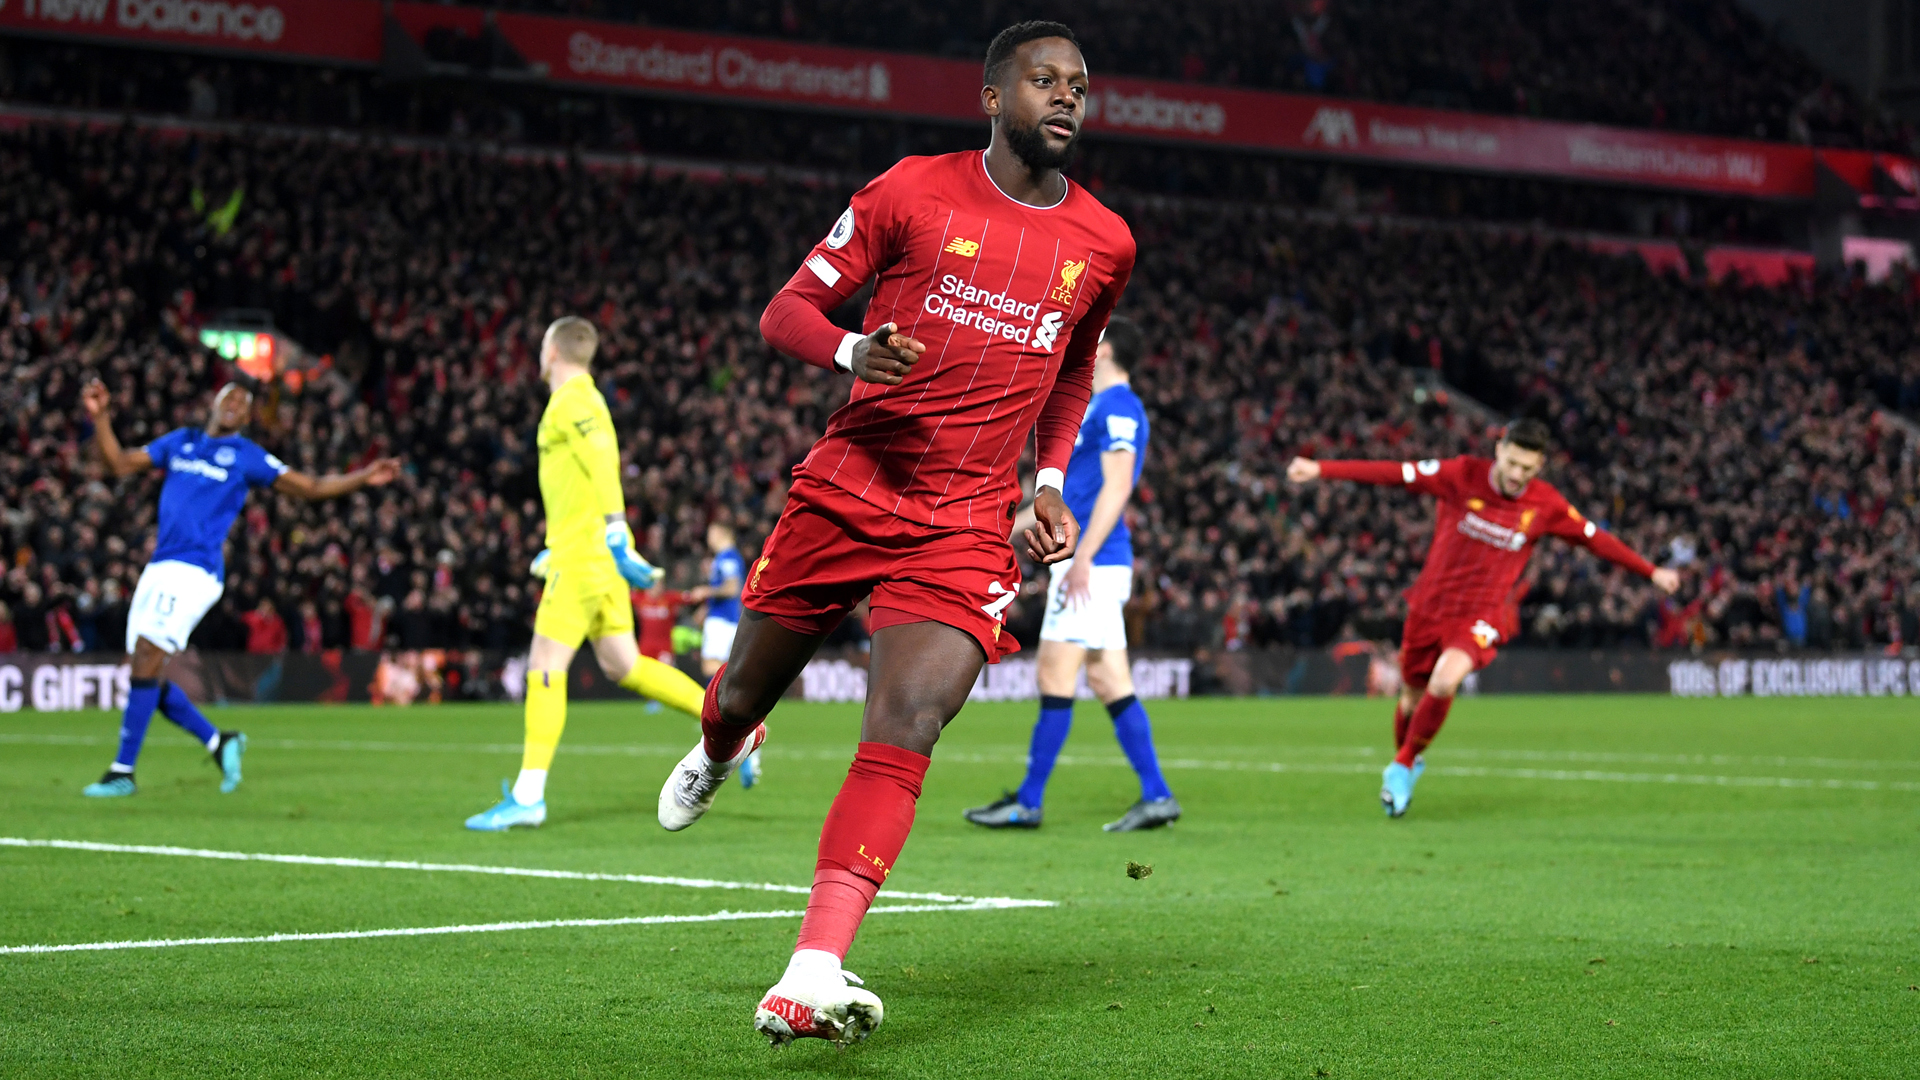 Klopp praises 'outstanding' Origi after derby win